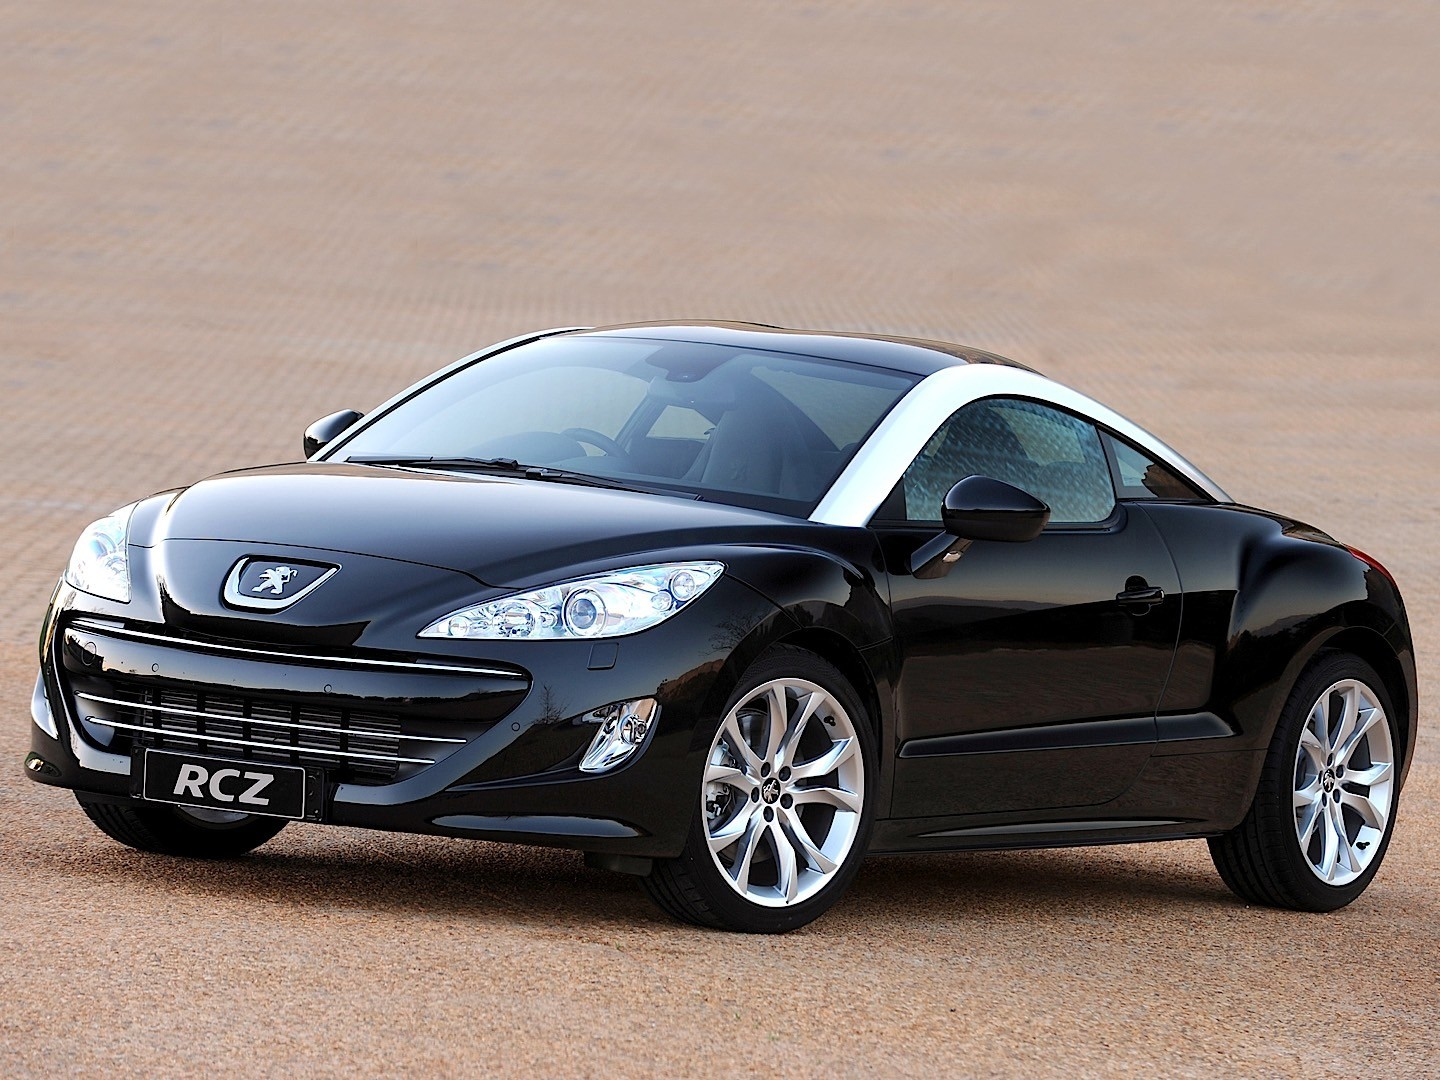 peugeot rcz 2009 2010 2011 2012 2013 autoevolution. Black Bedroom Furniture Sets. Home Design Ideas